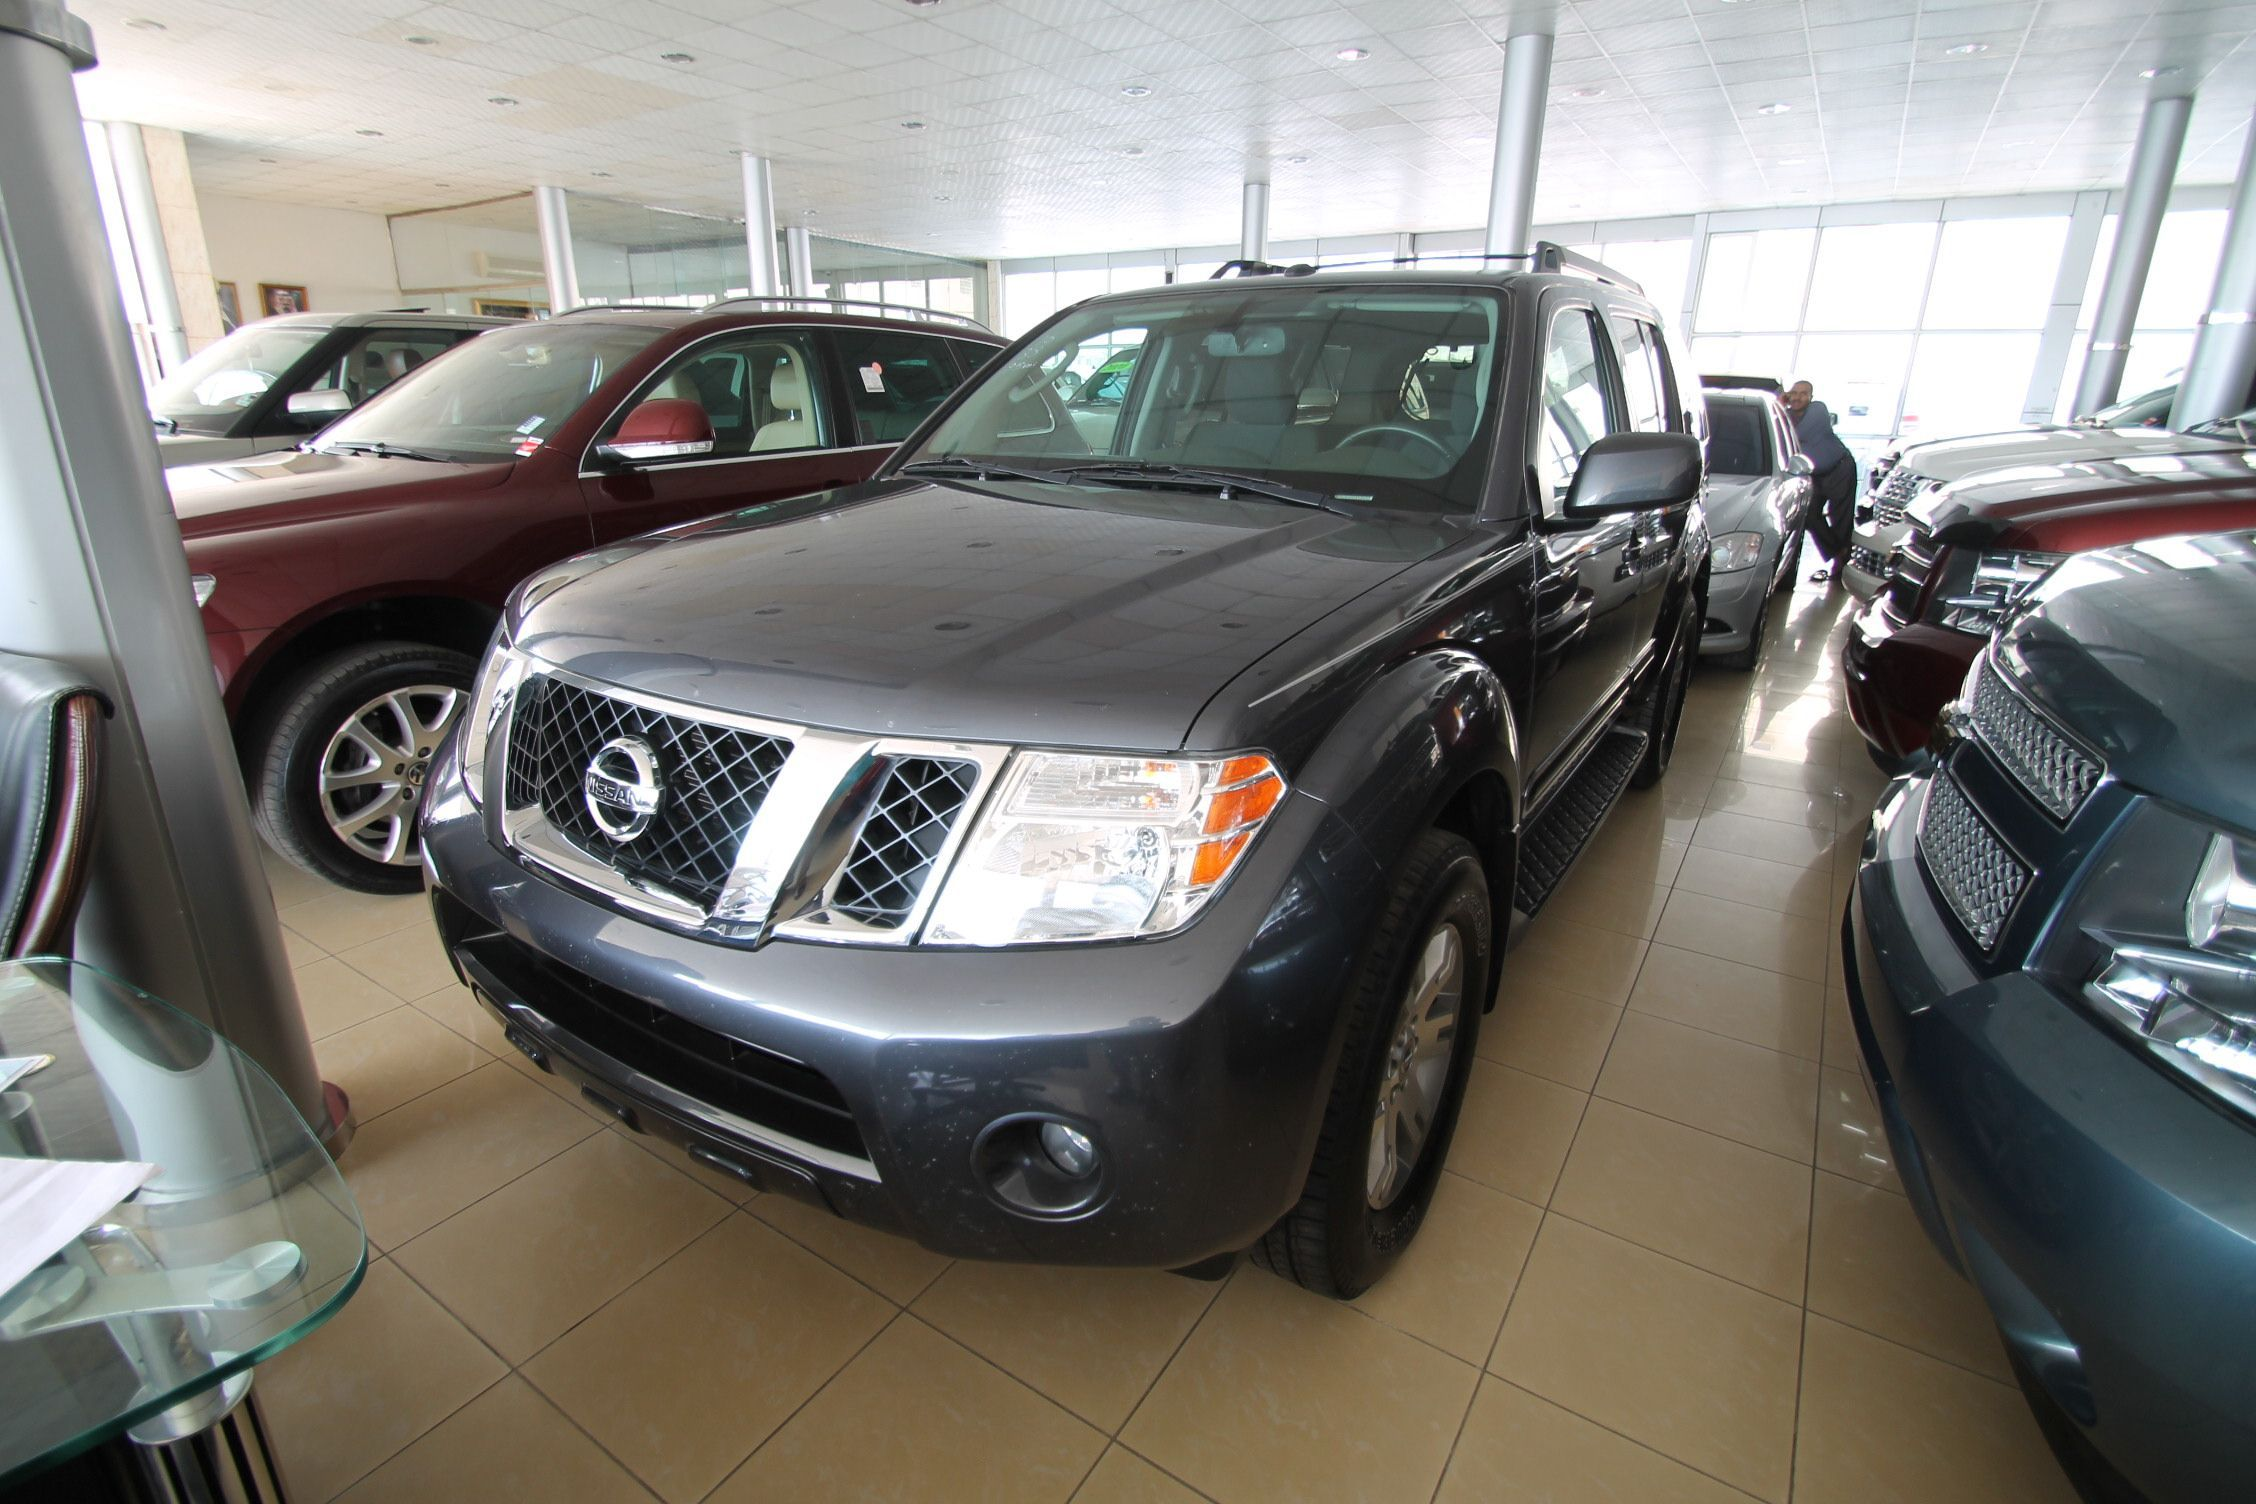 sale nissan for information very title vehicles pathfinder maintained well qatar living